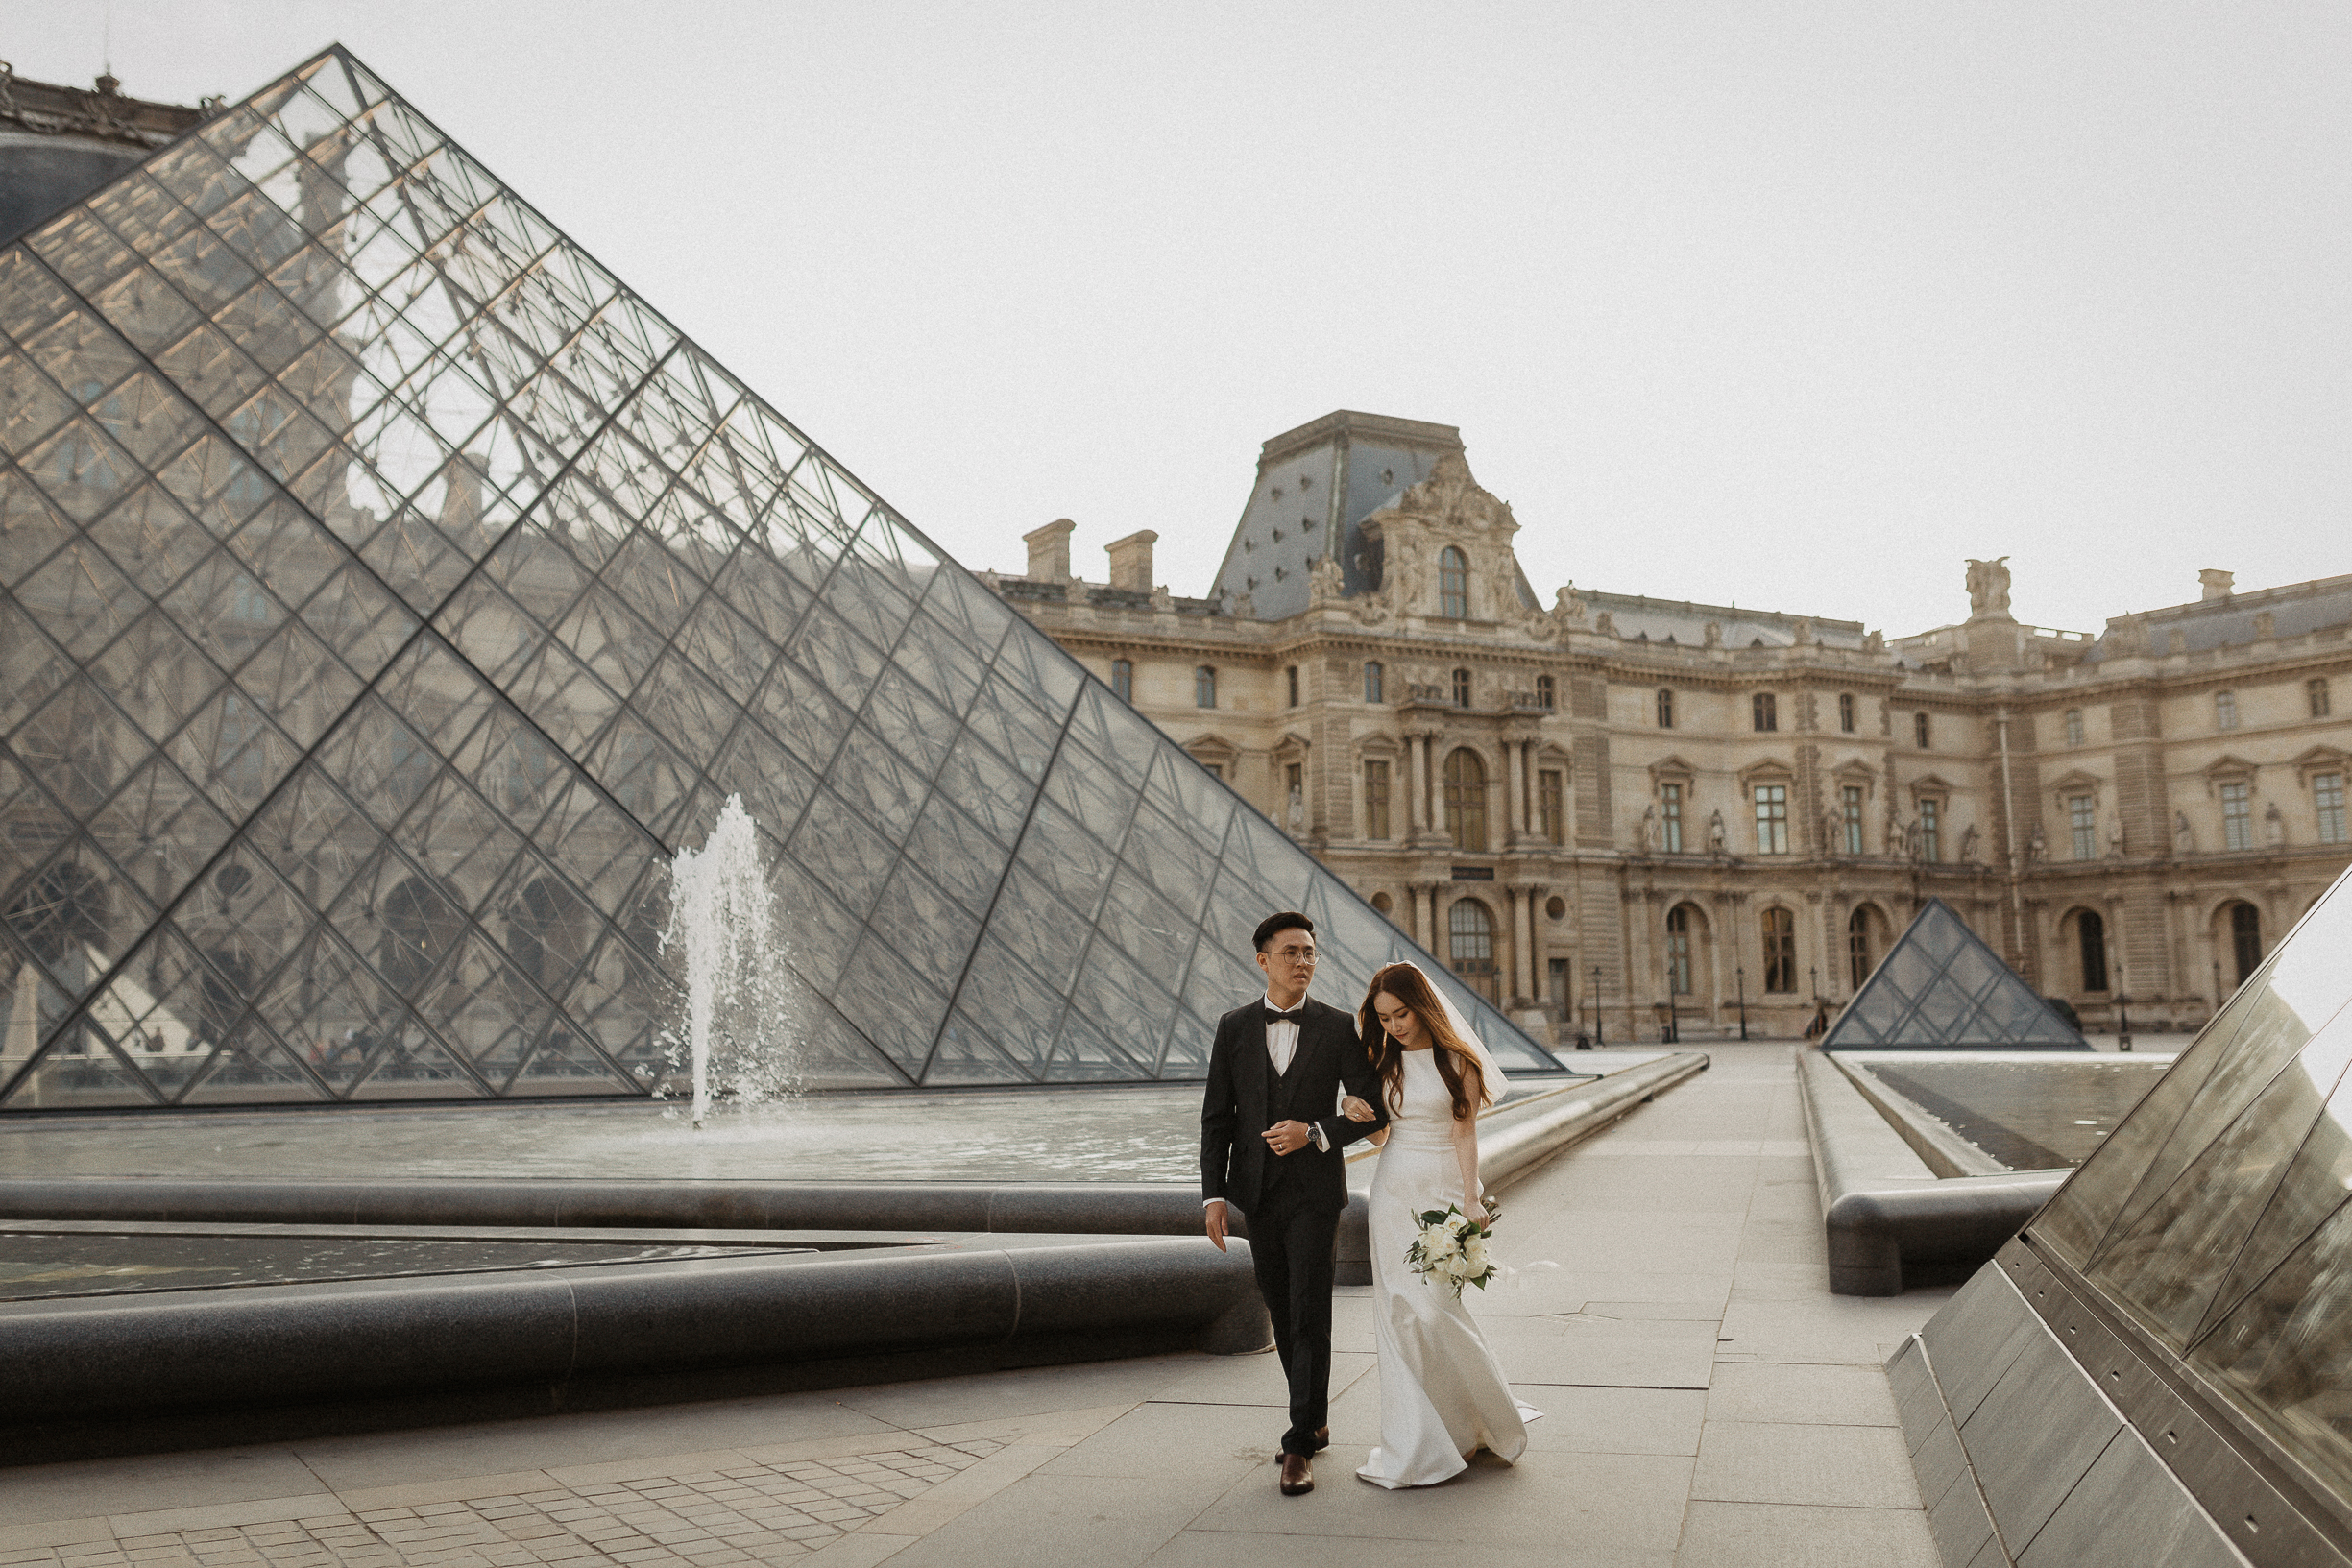 Engagement photo at the Louvre, Paris